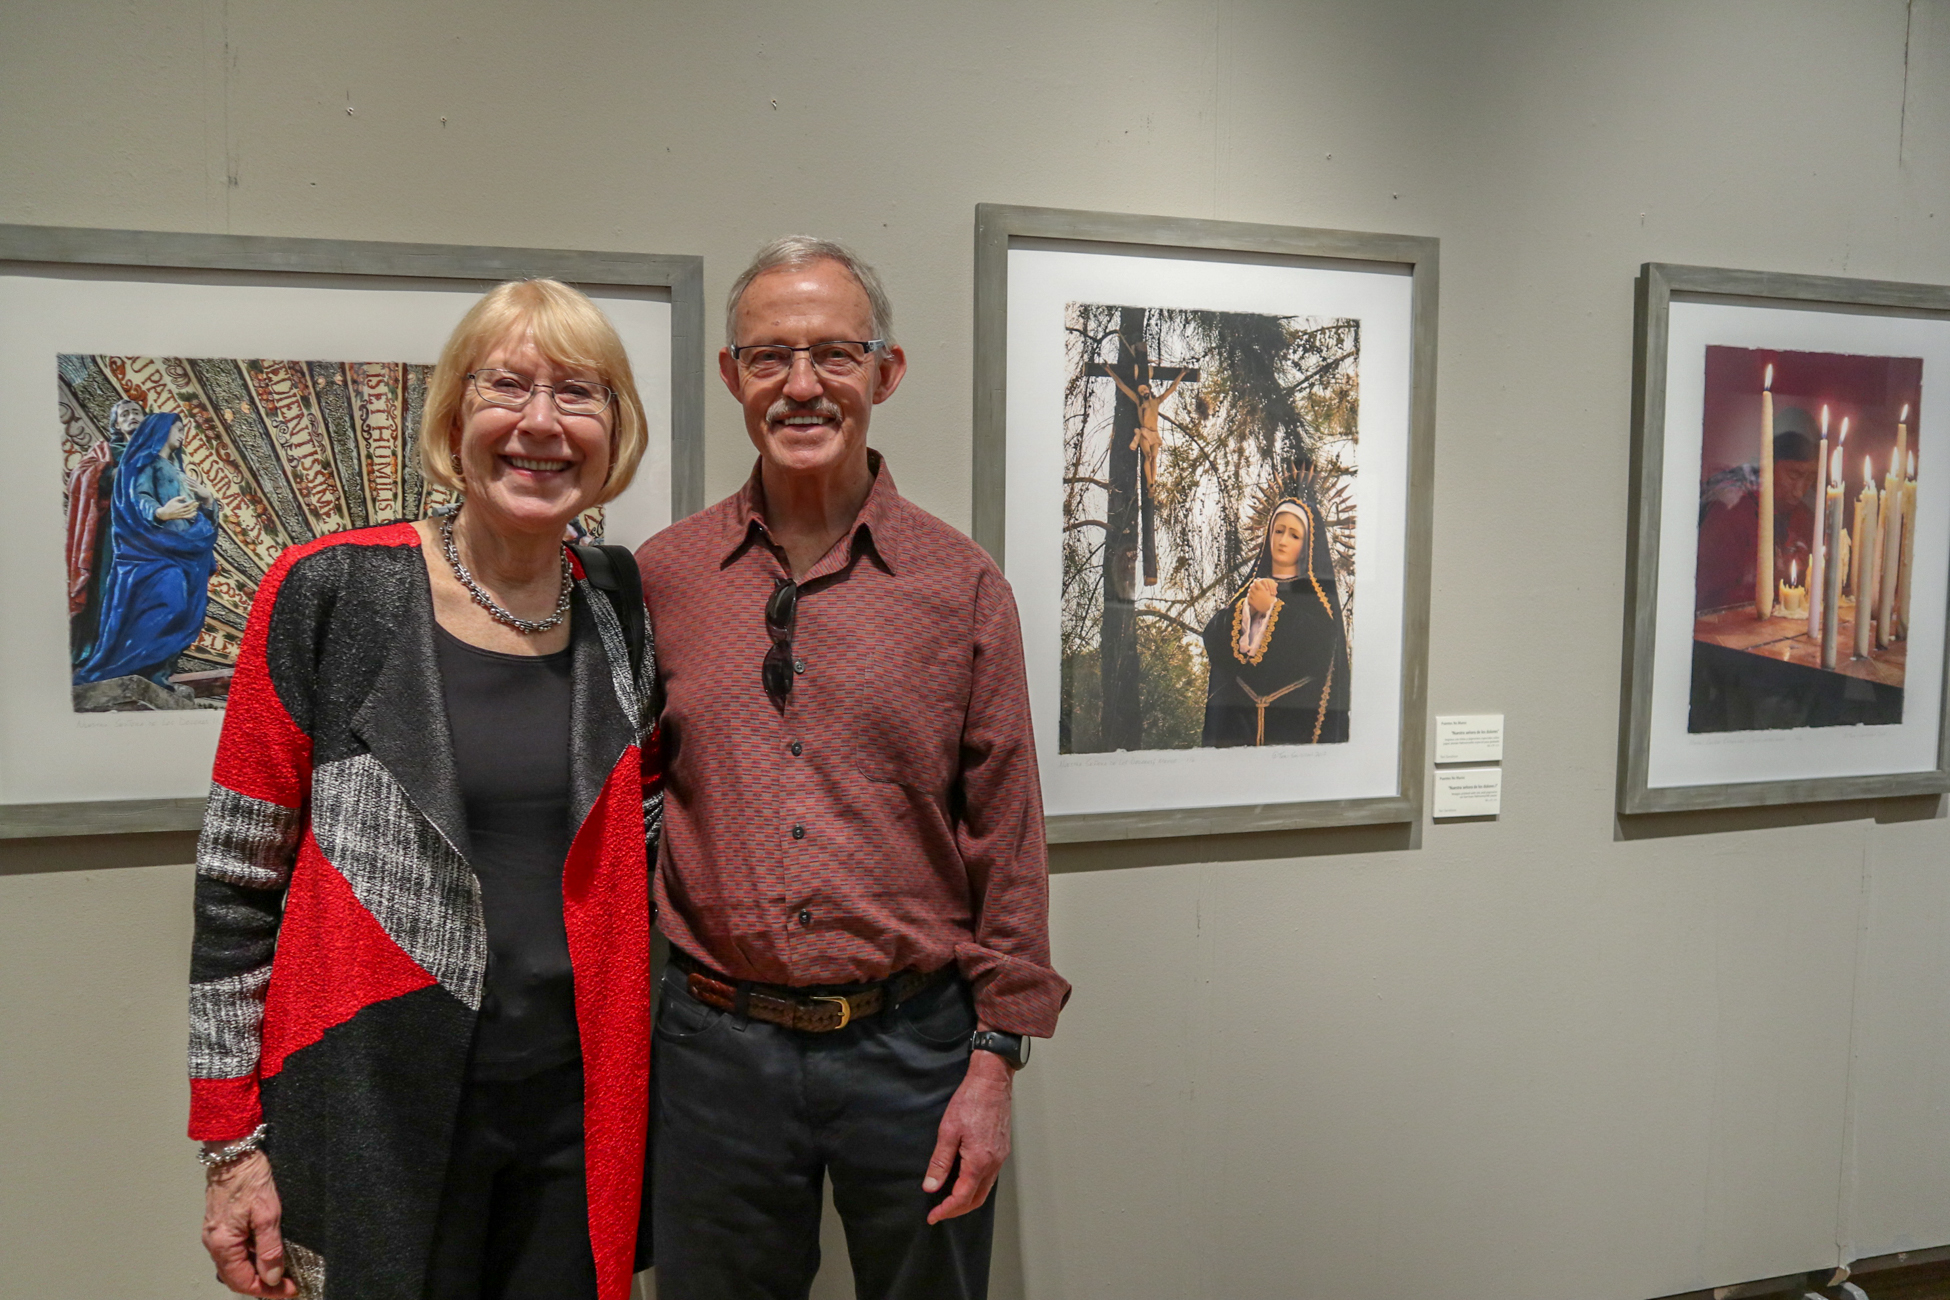 CEART March 2 - Teri and Hugh Carpenter